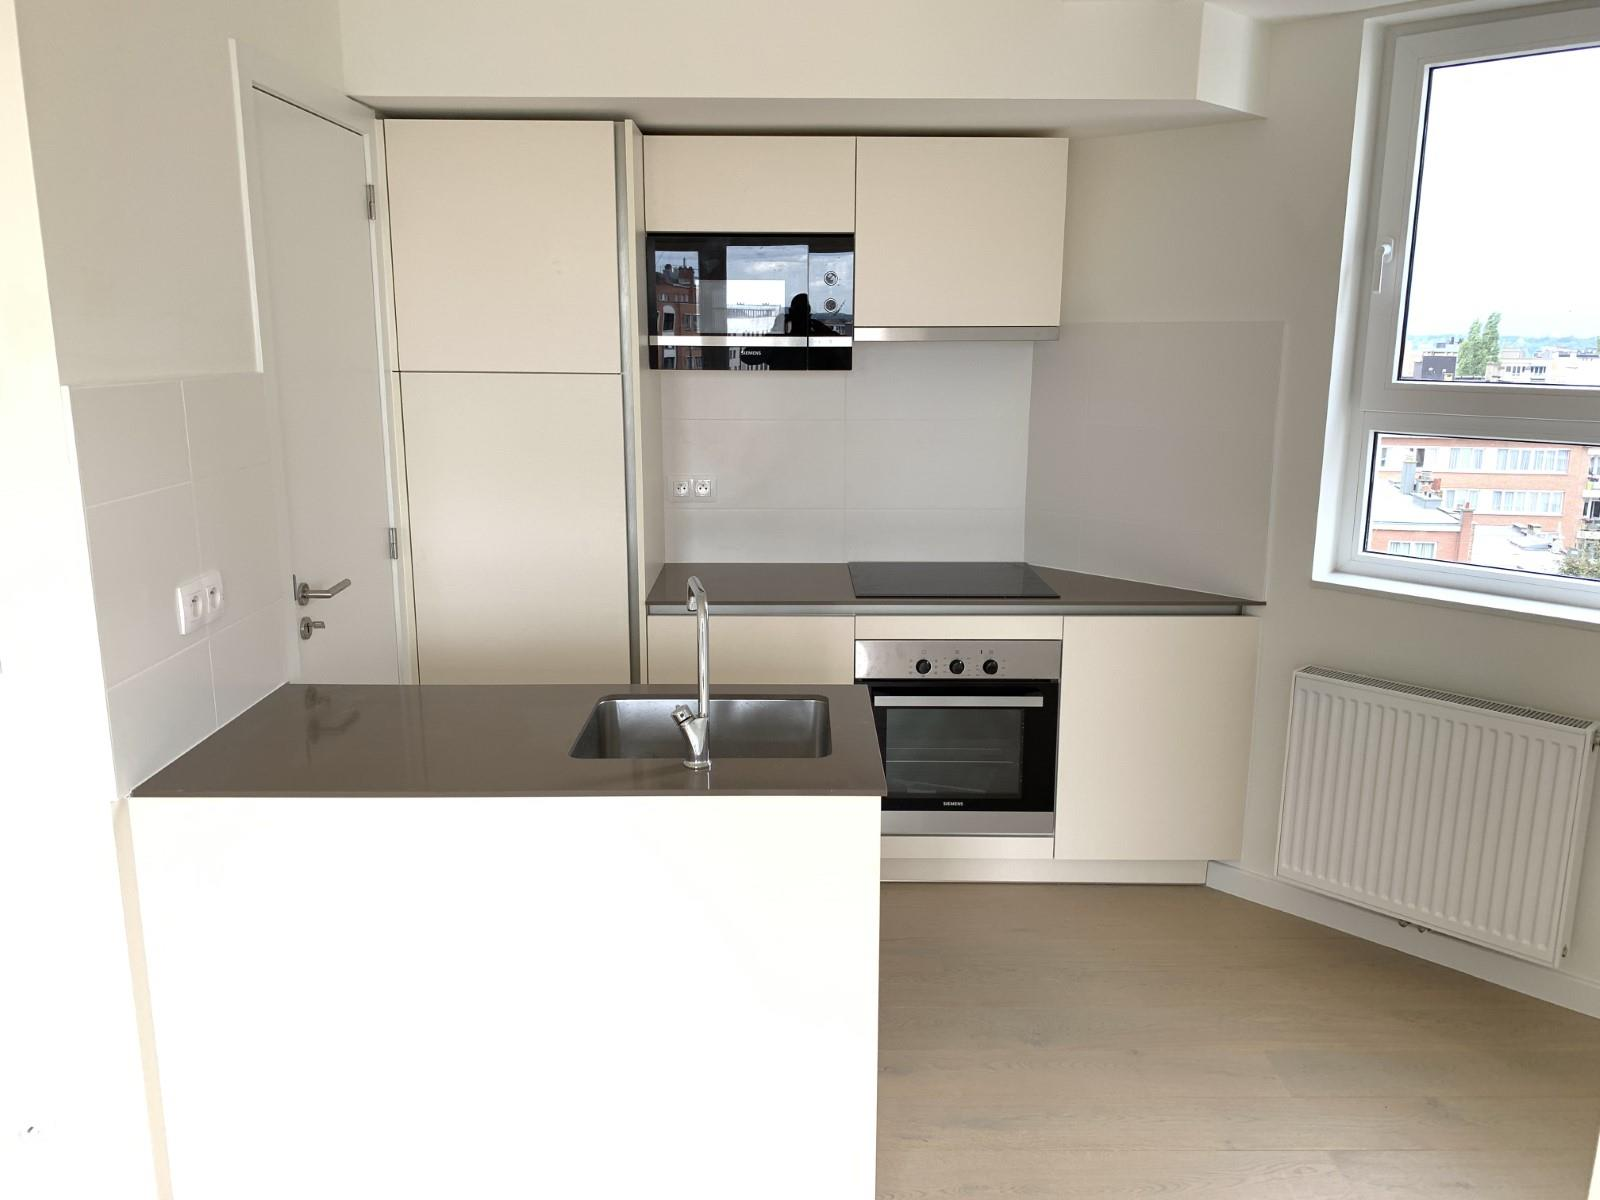 Appartement exceptionnel - Schaerbeek - #3875201-10